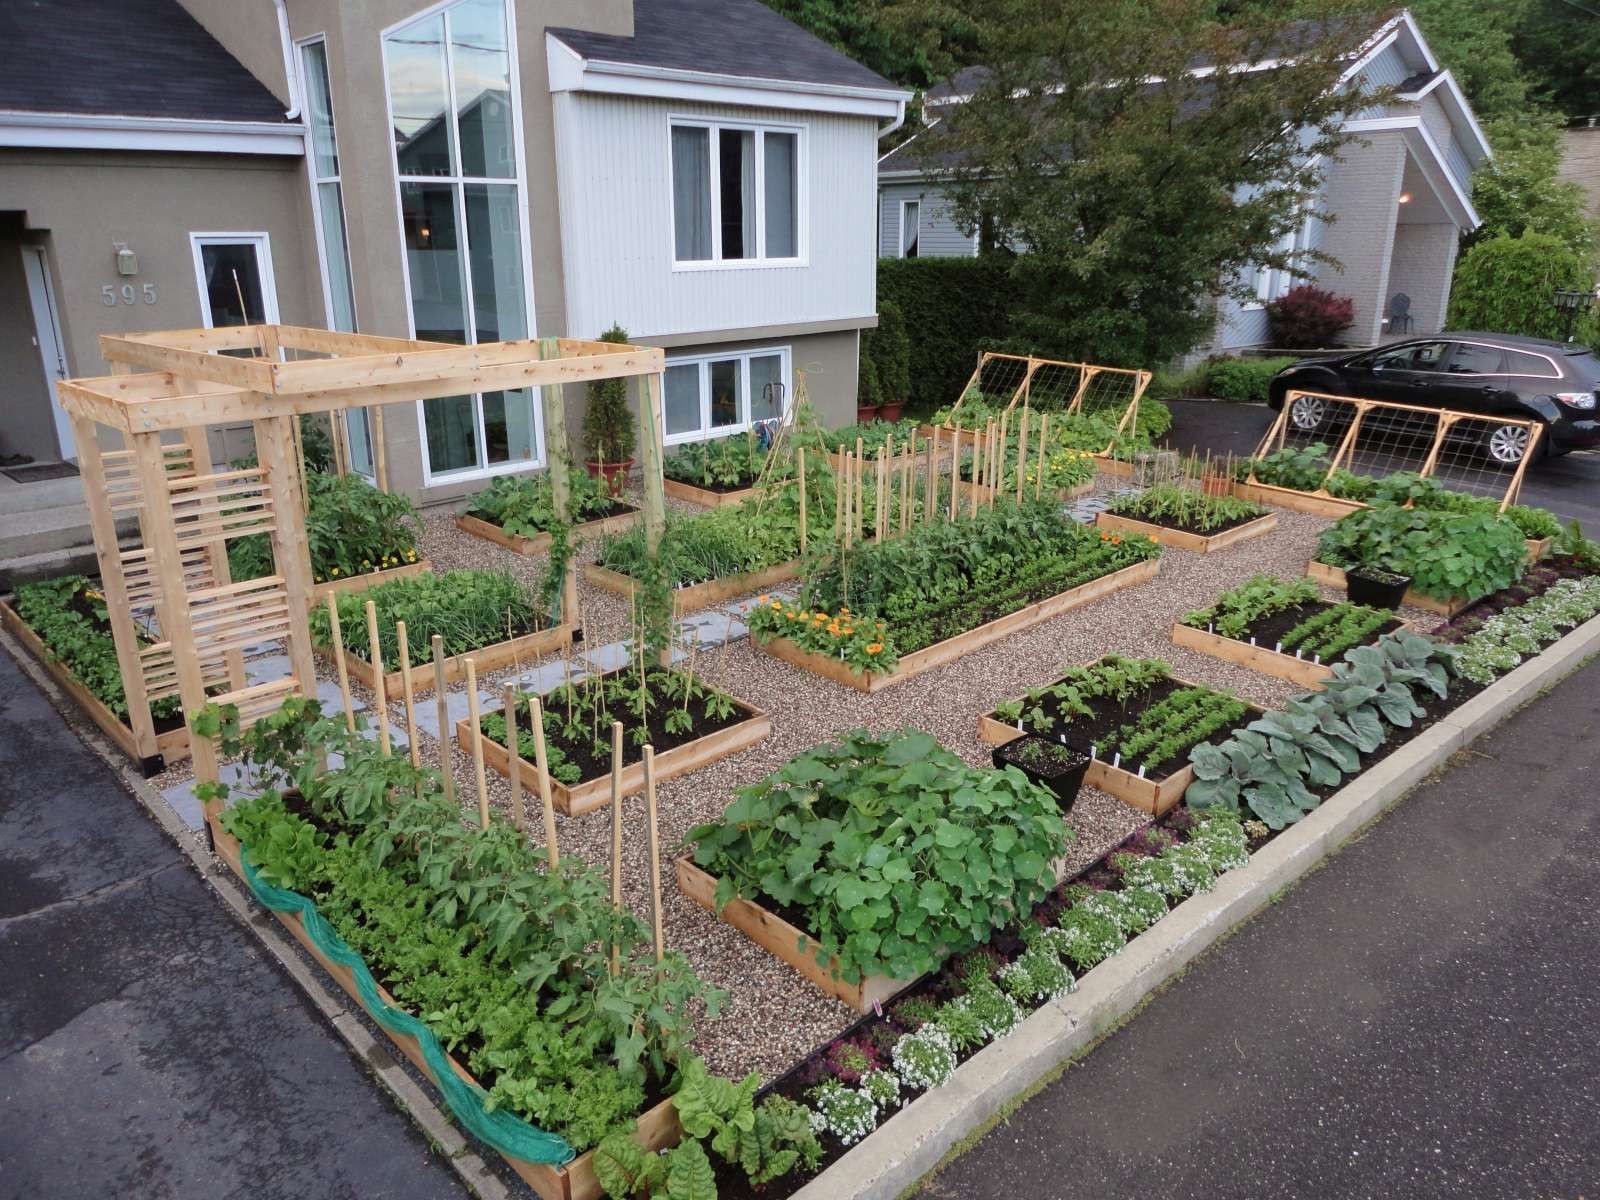 Front Yard Garden FranceRepin ByPinterest For IPad Garden - Vegetable gardens ideas